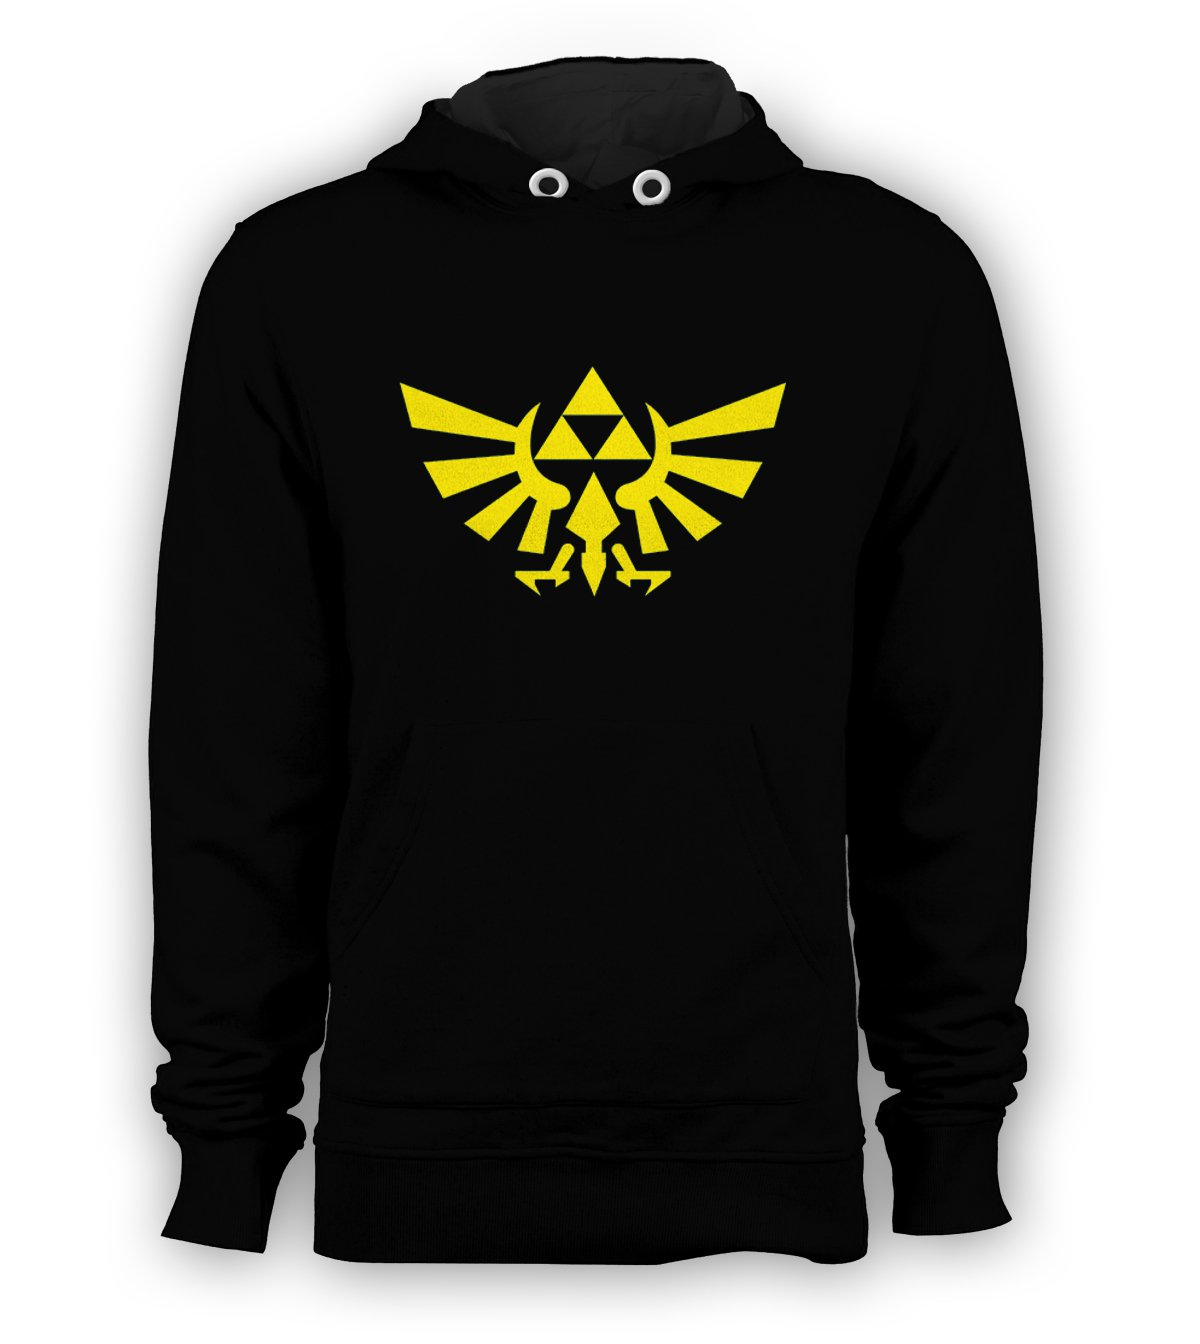 The Legend of Zelda Wings Games Pullover Hoodie Men Sweatshirts Size S to 3XL New Black